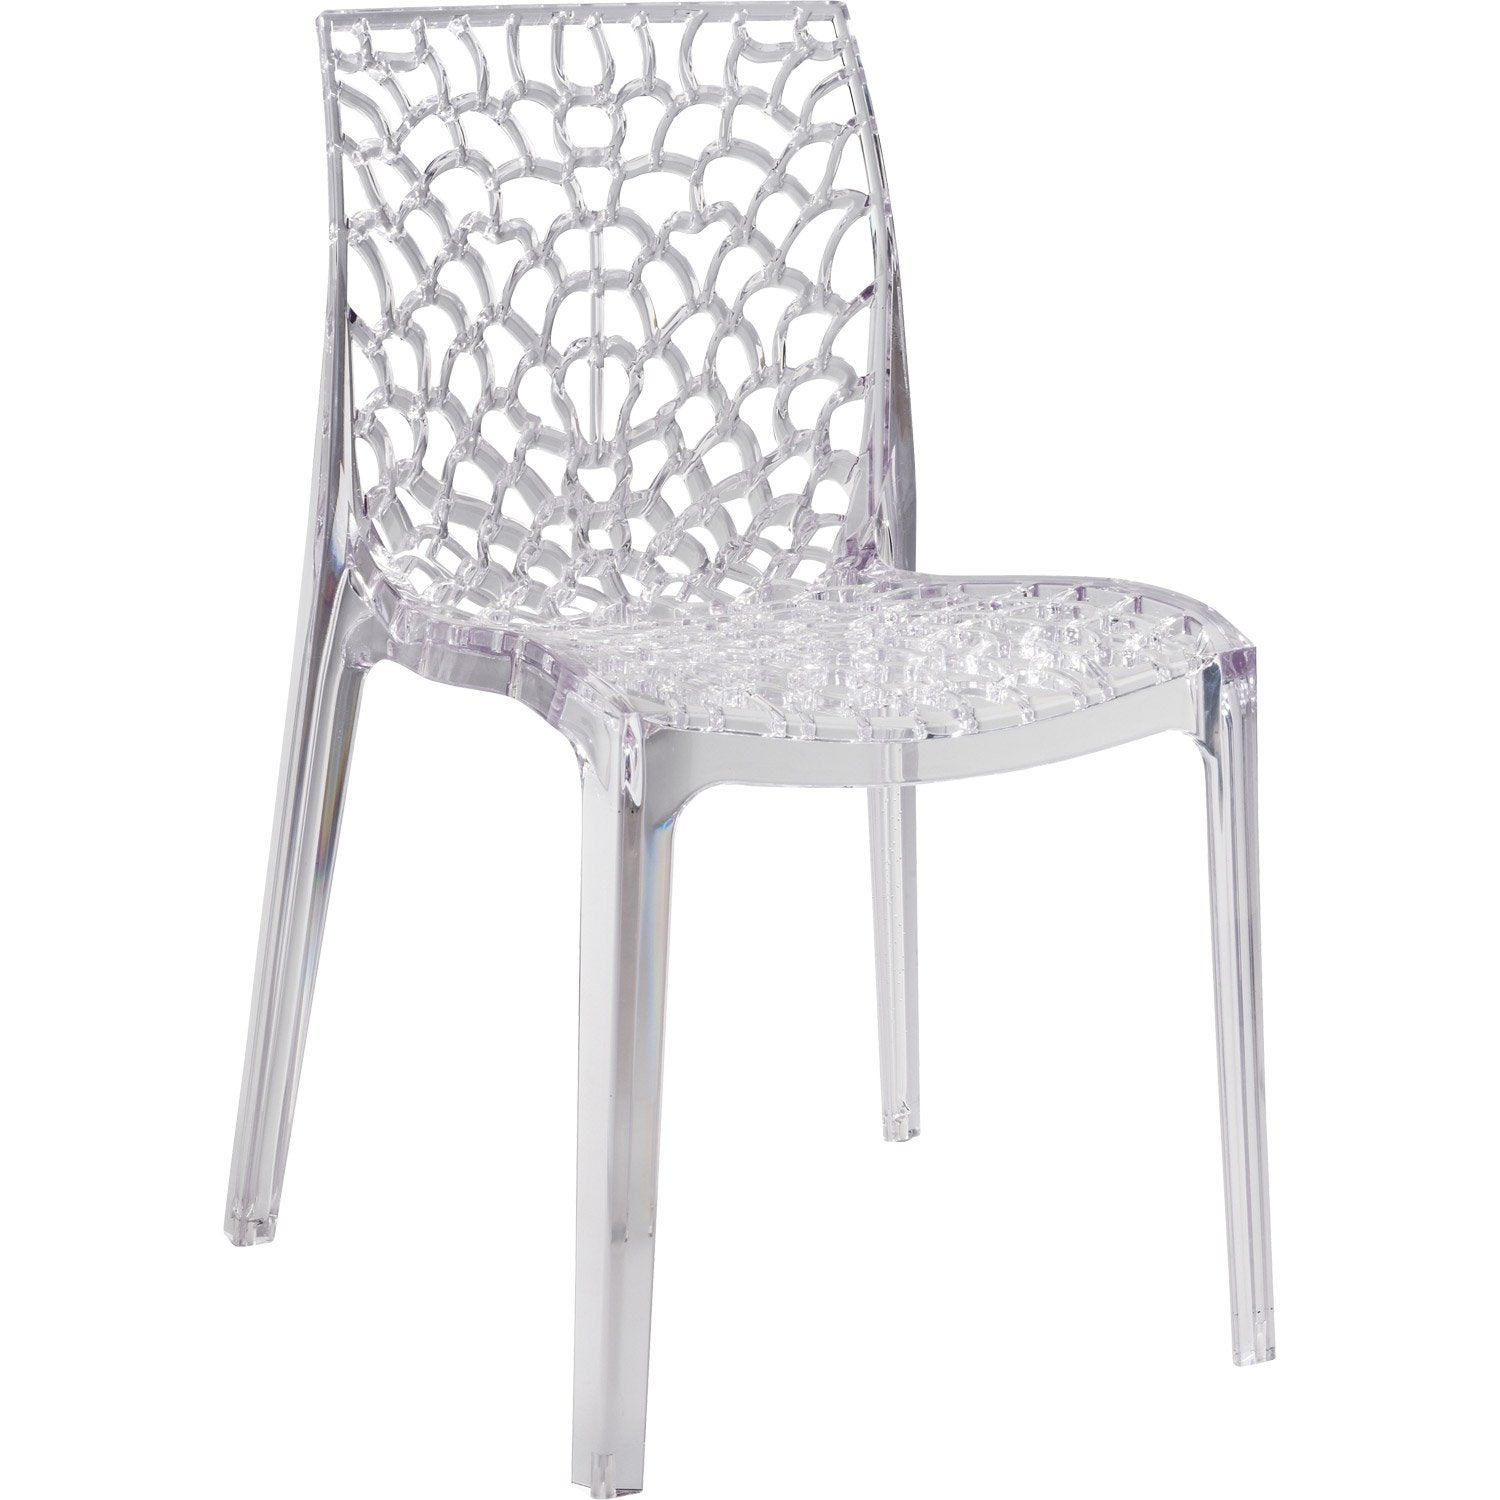 Chaise de jardin en polycarbonate grafik lux transparent for Ocultacion jardin leroy merlin